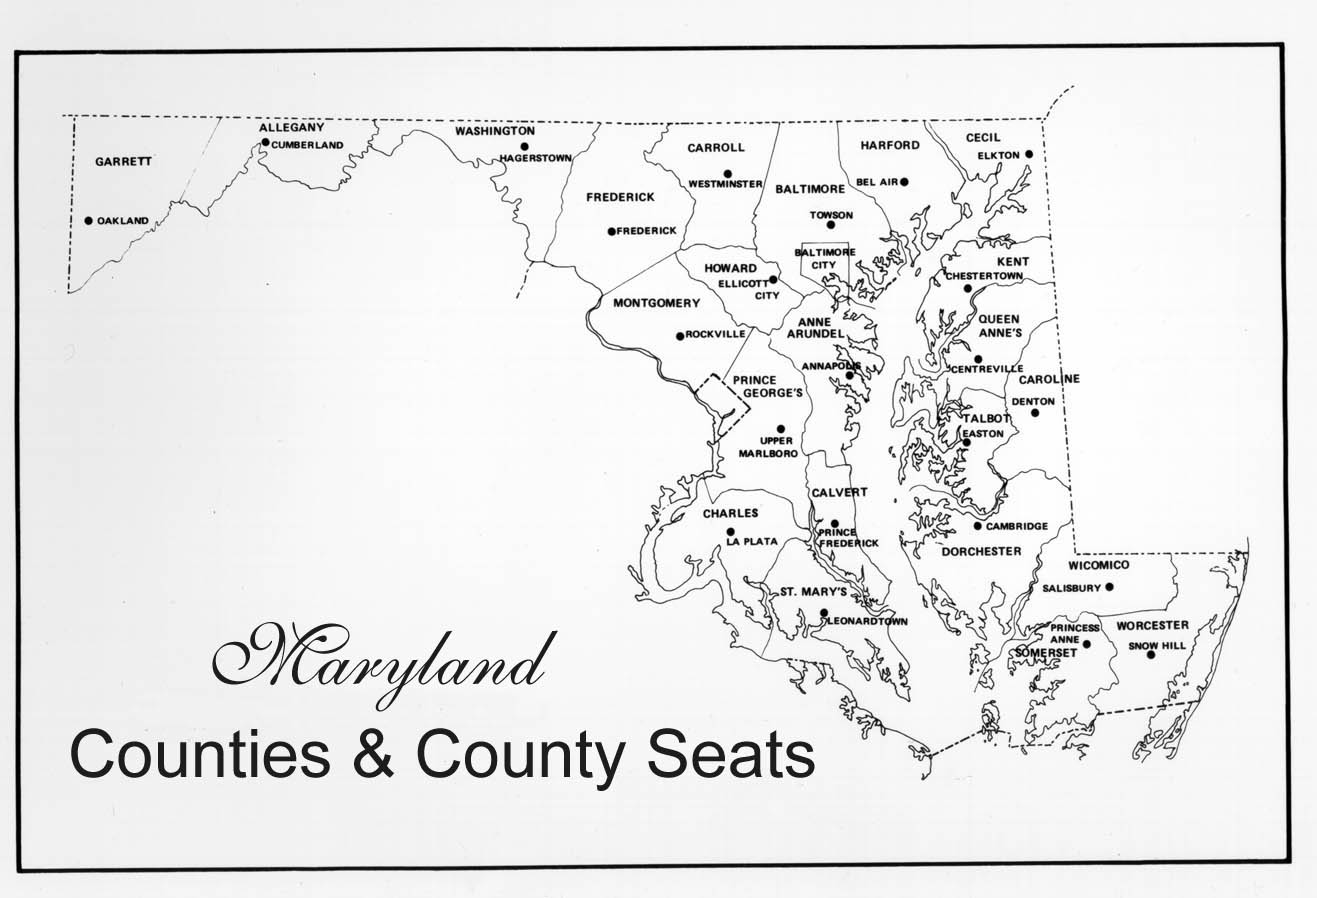 Maryland Counties Map Counties County Seats - Maryland county map